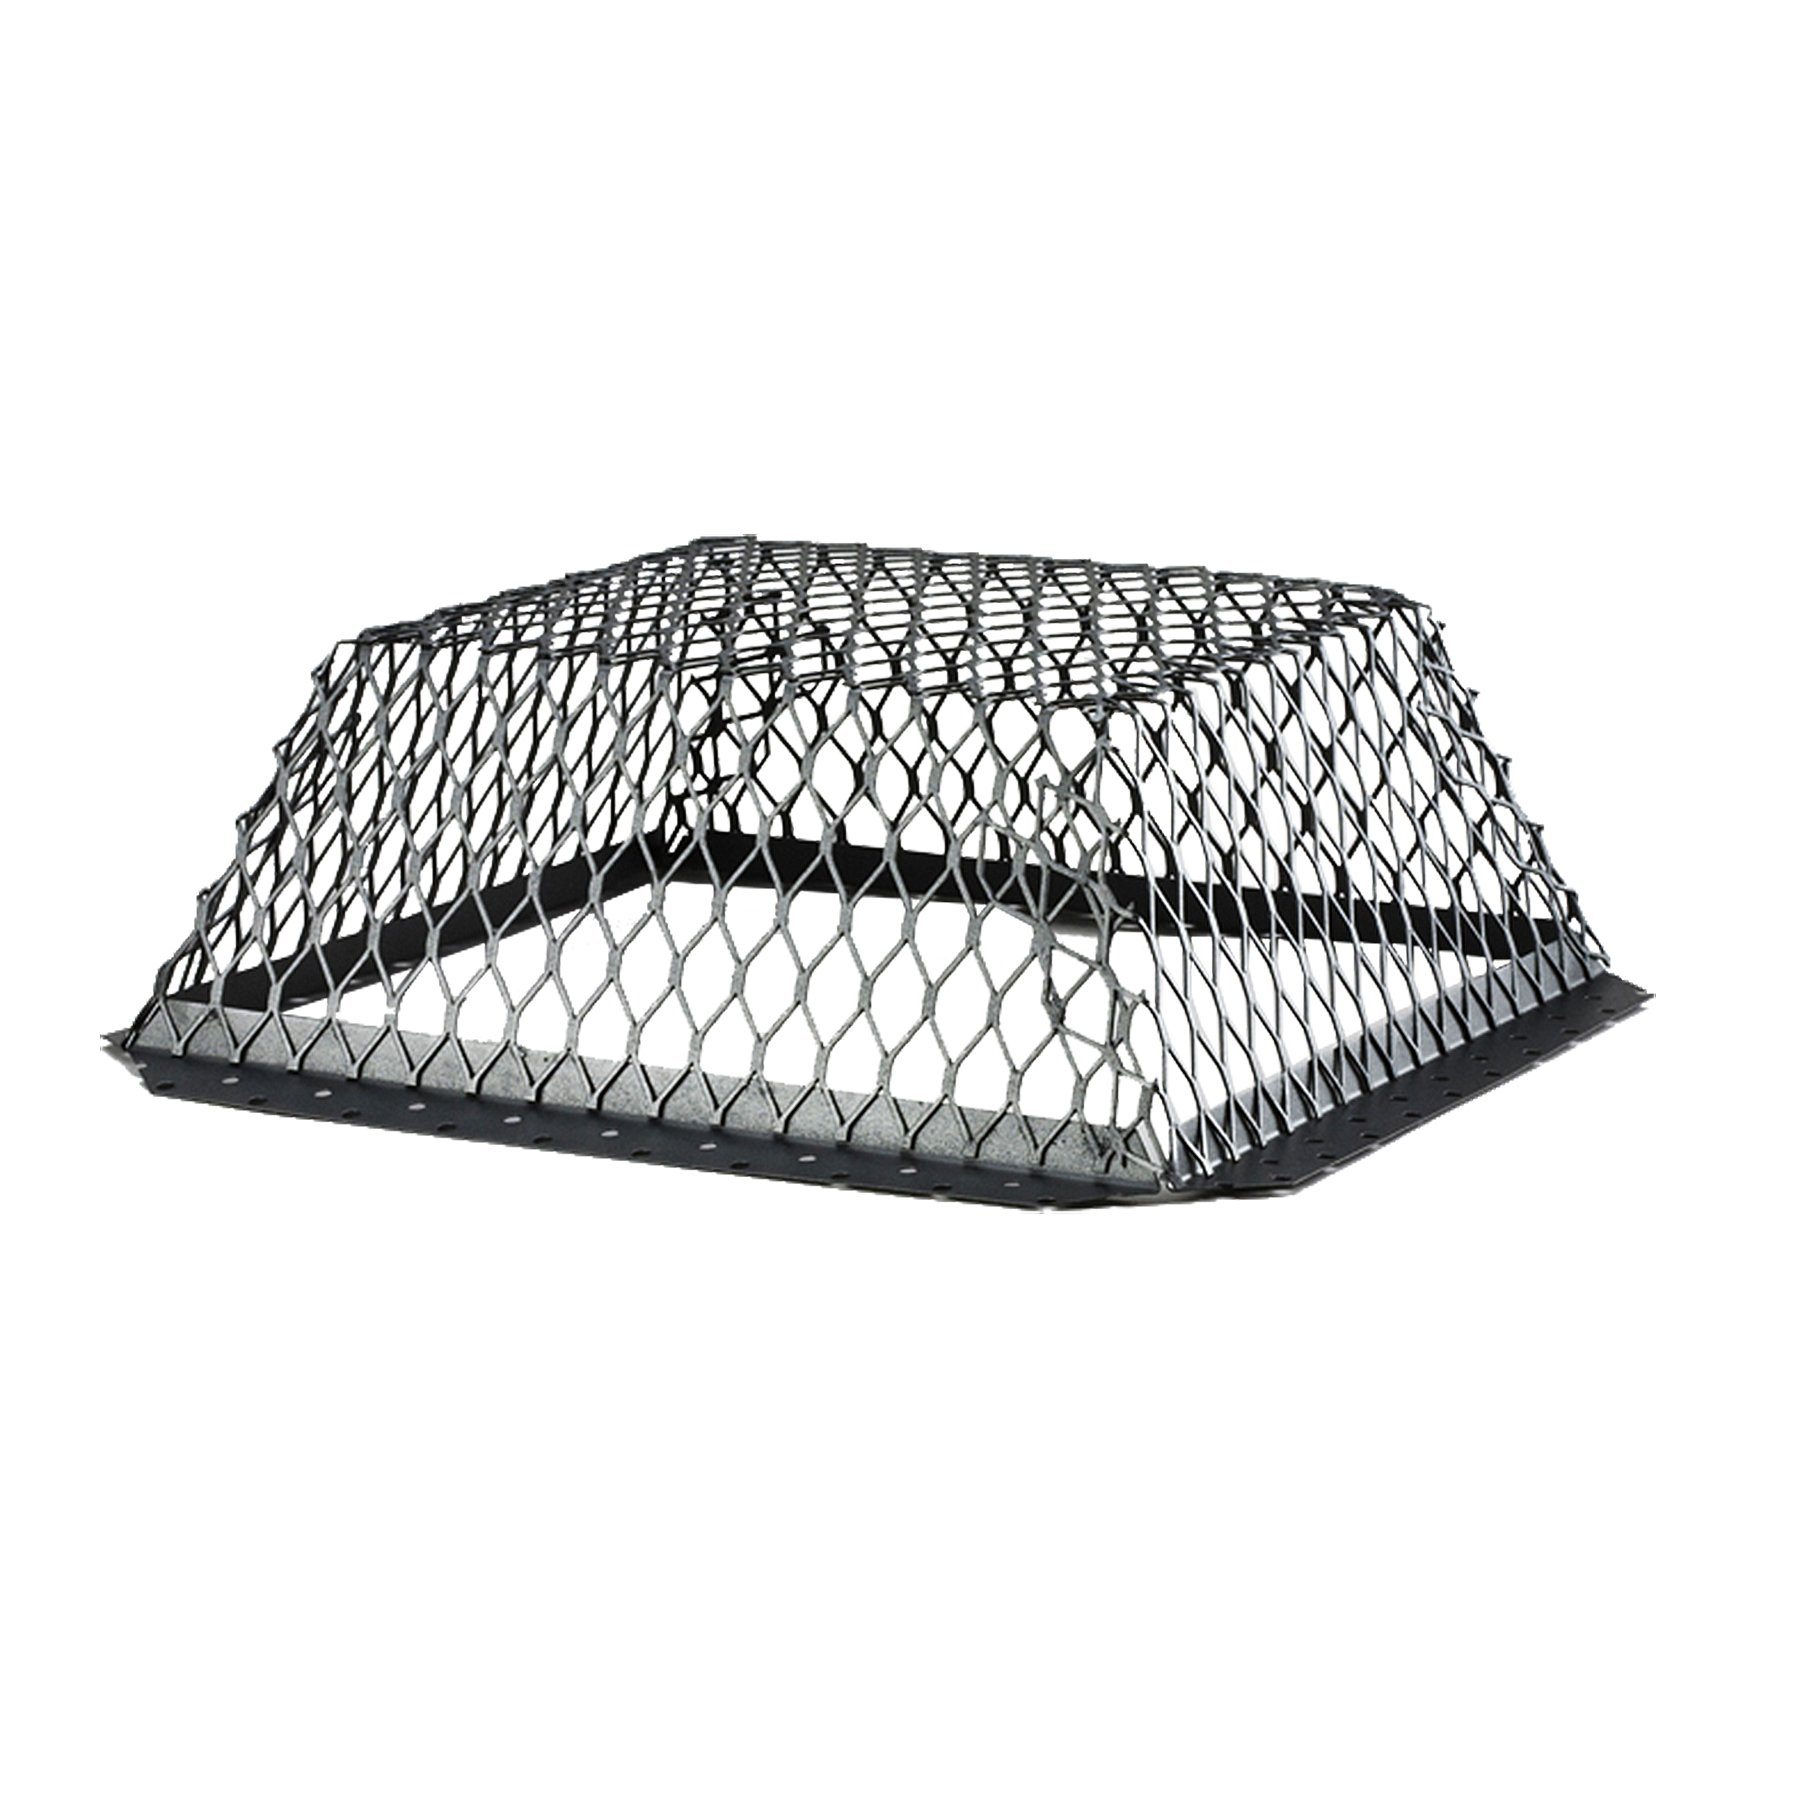 HY-C RVG1616G Galvanized Black Roof VentGuard with Wildlife Exclusion Screen, 16'' x 16'' x 6''